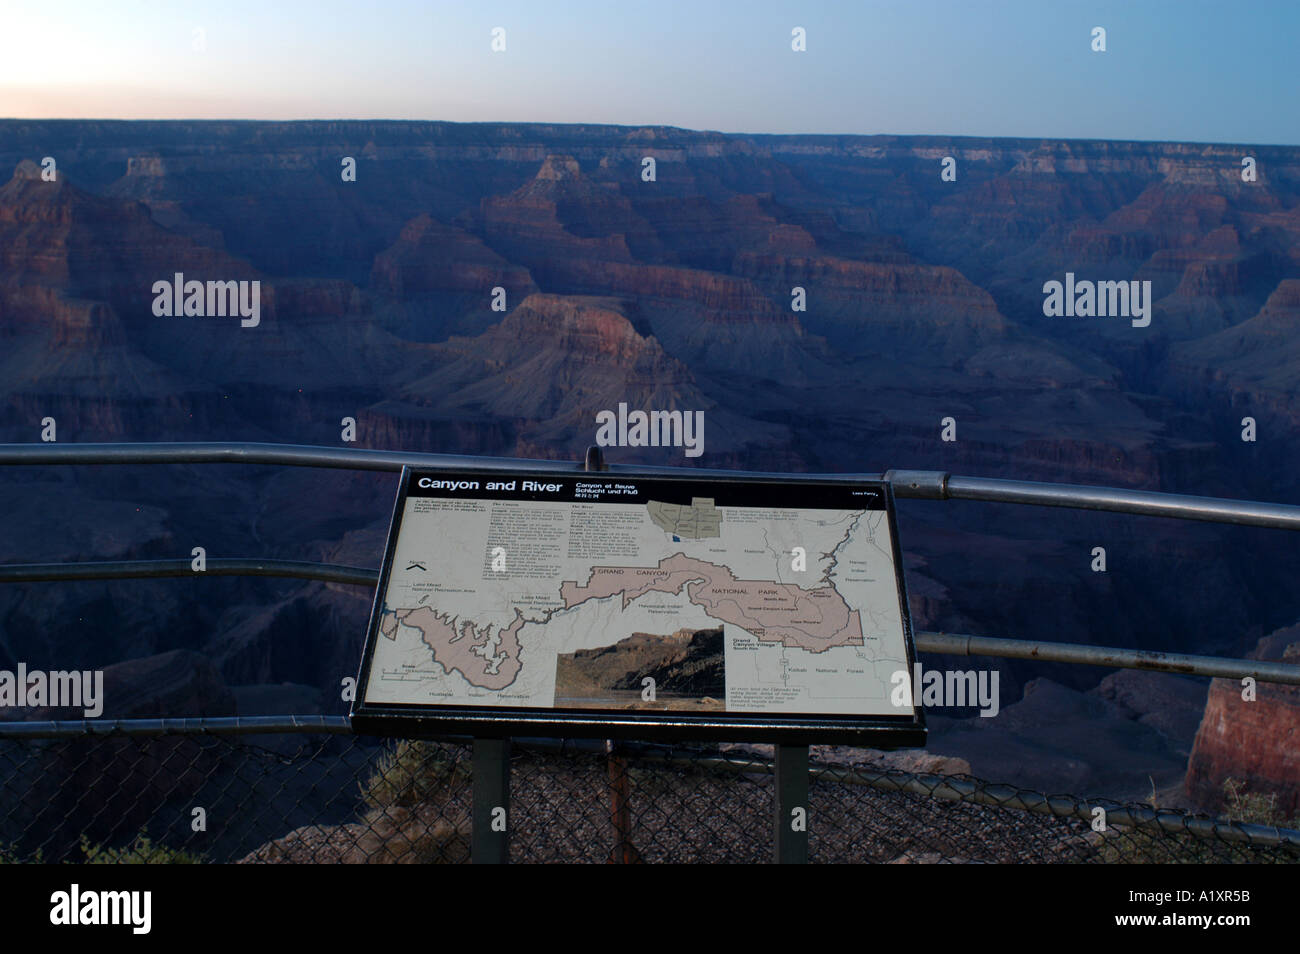 Information sign and map of the Grand Canyon and Colorado River ...